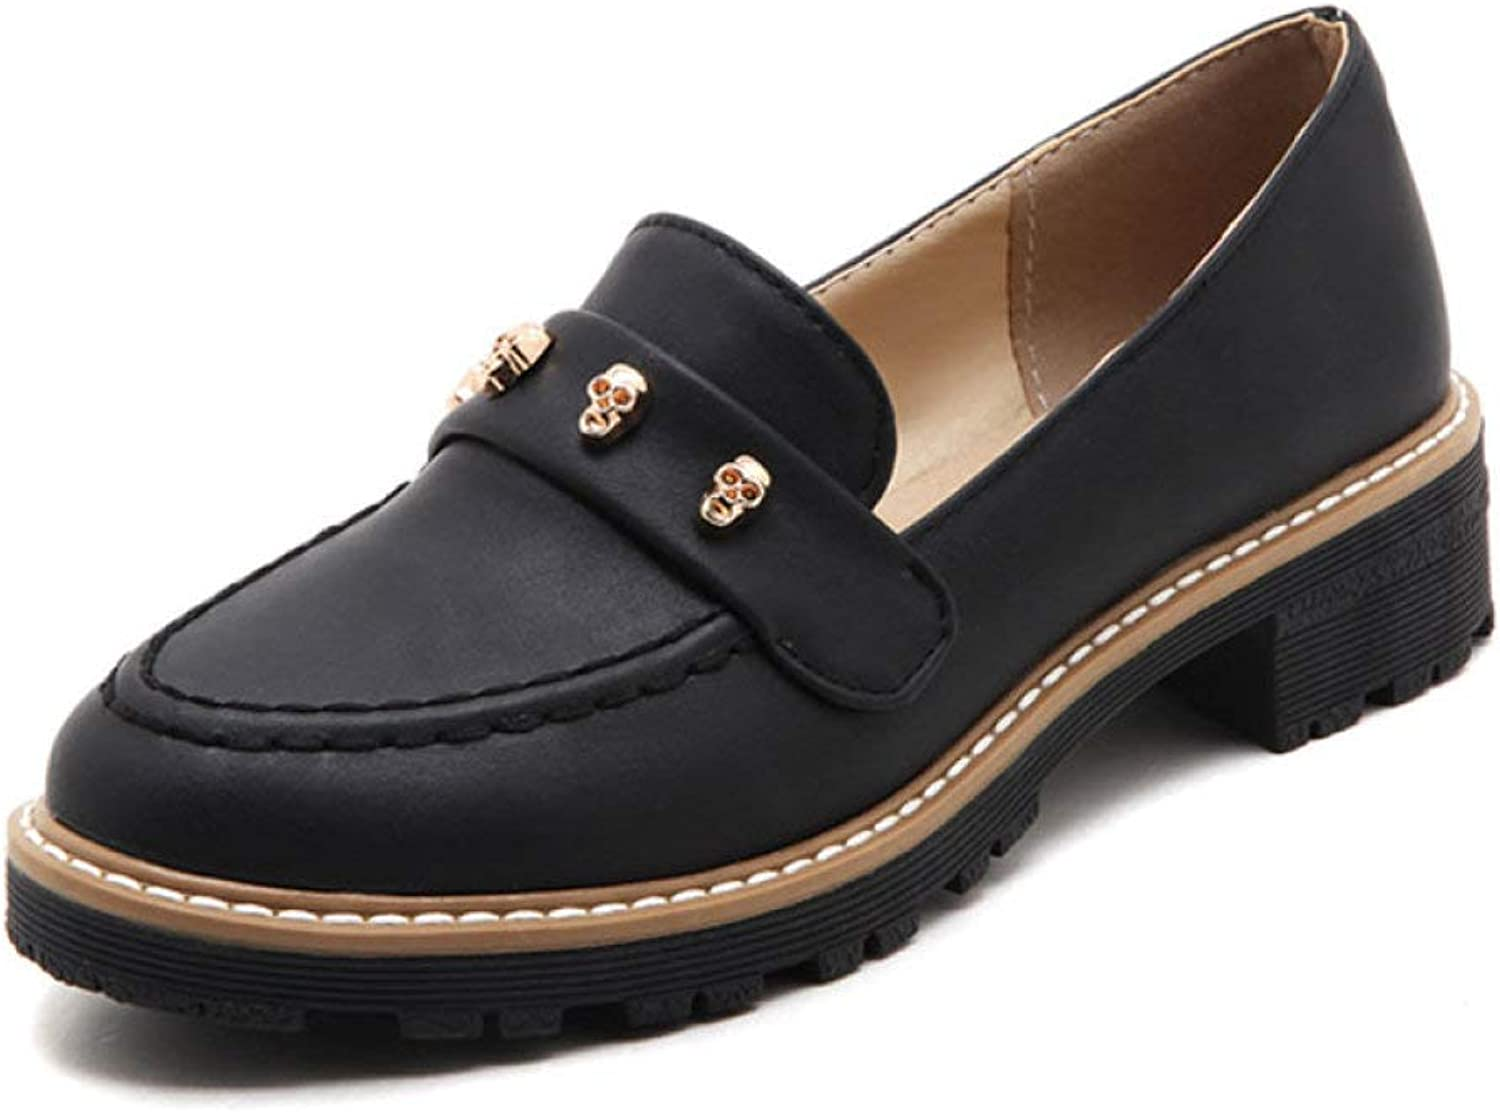 Fay Waters Women's Metal Skull Platform Loafer shoes Round Toe Slip On Mid Heel Fashion Oxfords